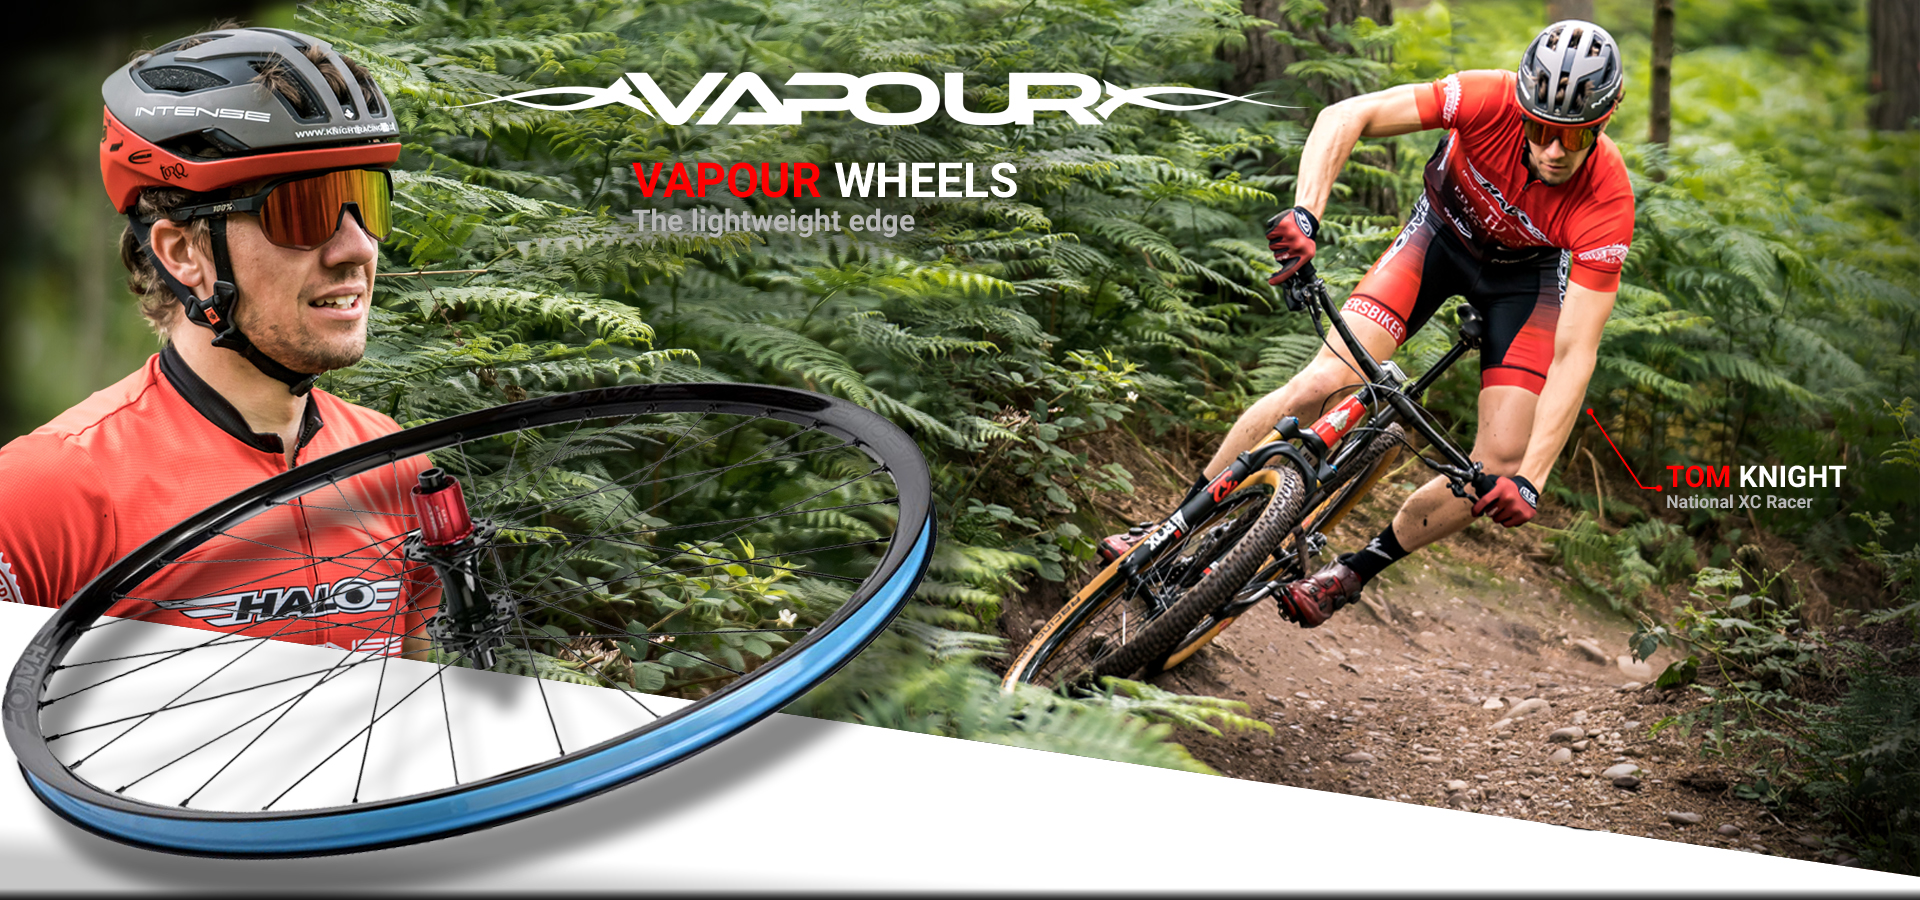 Vapour-Banner-Halo-Wheels